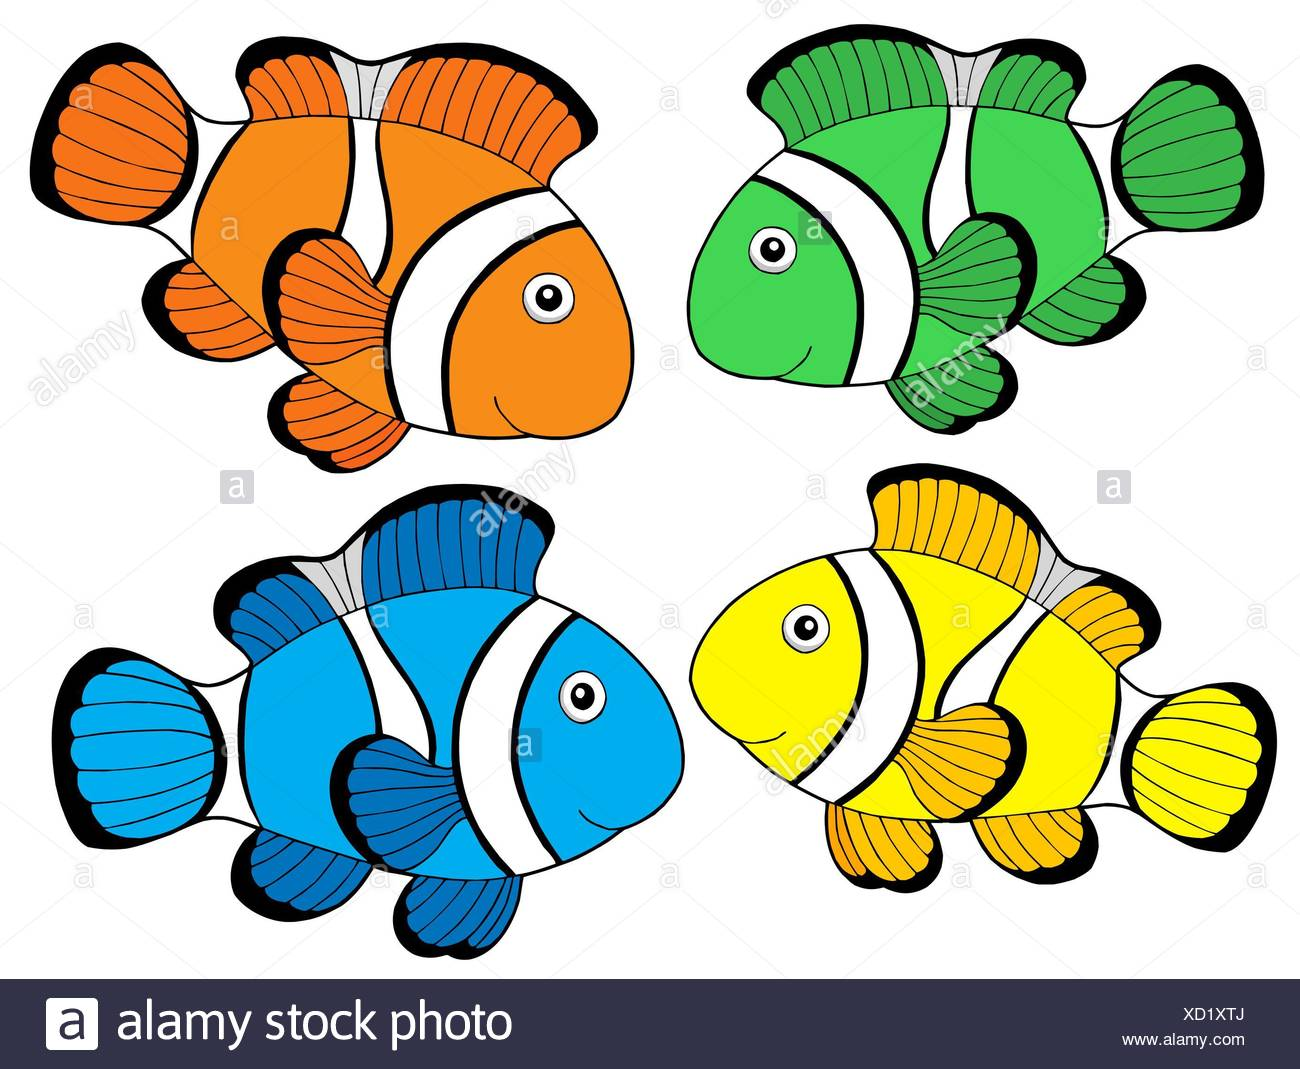 Life Exist Existence Living Lives Live Animal Animals Fish Fishes Nature Laugh Stock Photo Alamy This worksheet is appropriate for young learners , complete beginners and elementary students. https www alamy com life exist existence living lives live animal animals fish fishes nature laugh image283399442 html